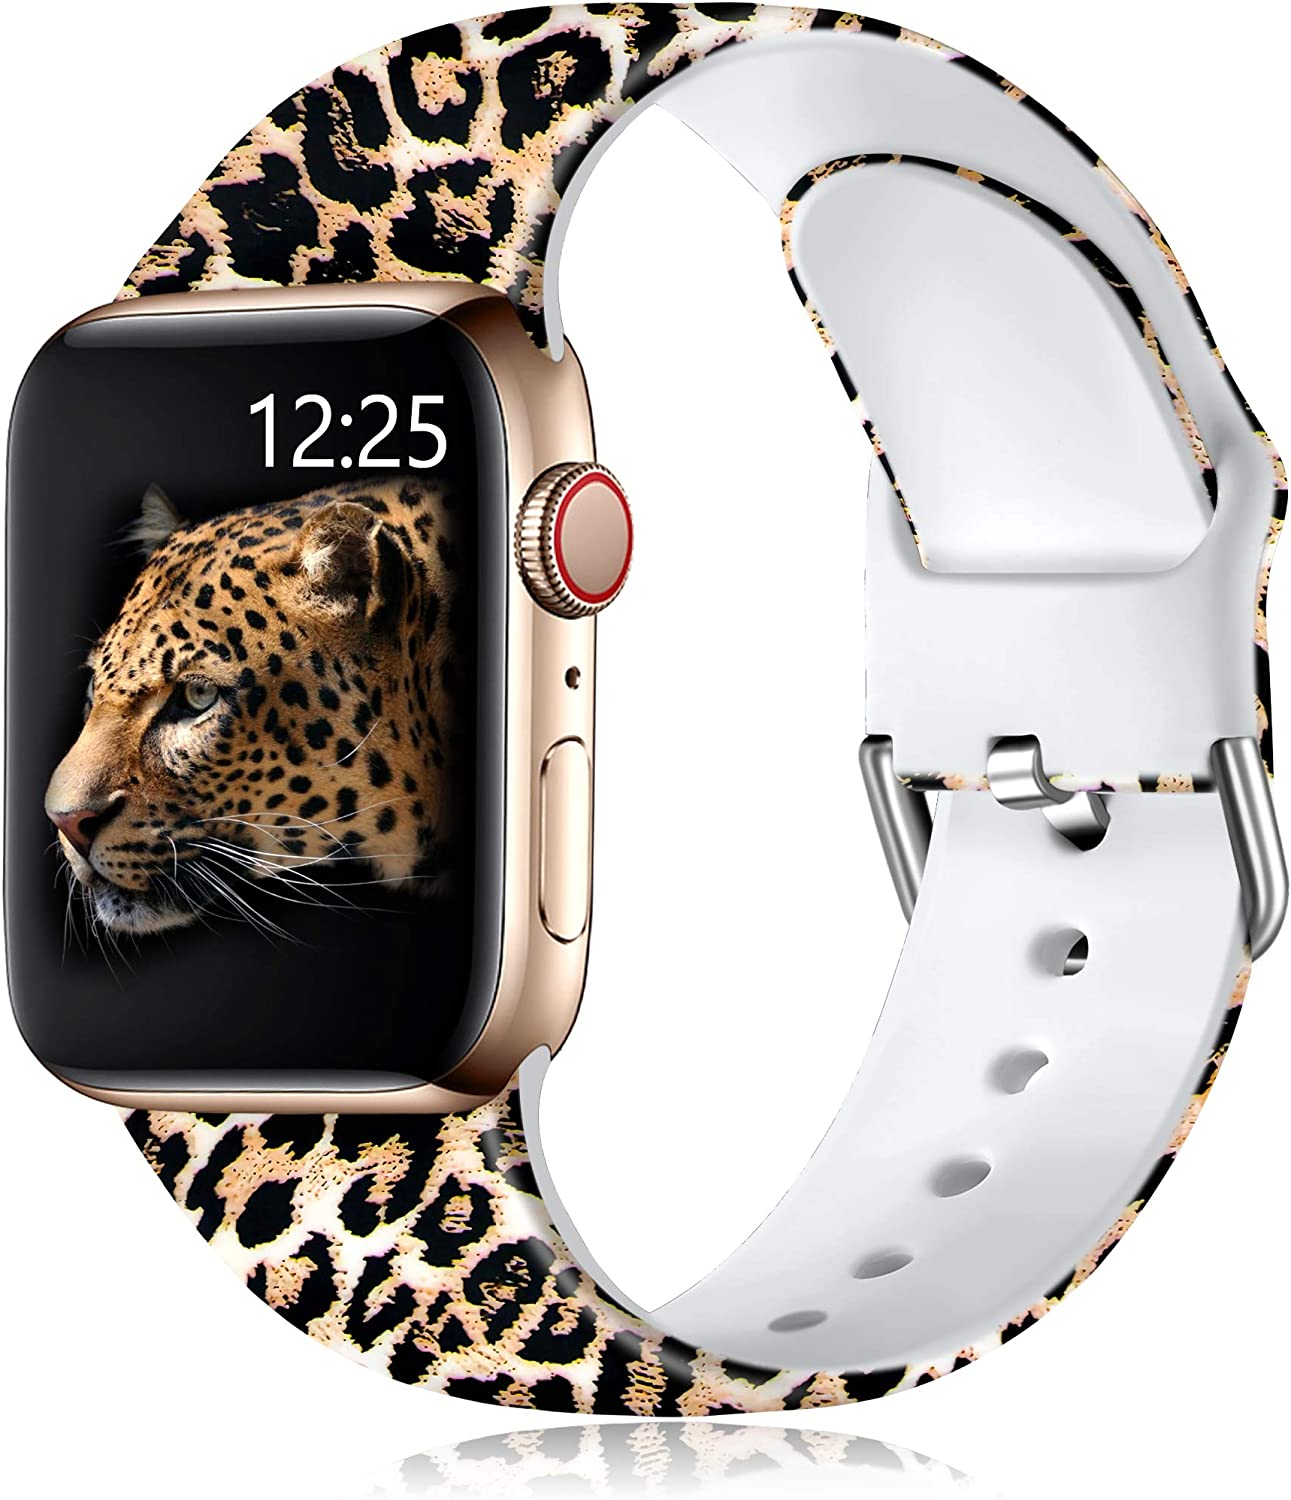 Muranne Band Compatible with Apple Watch SE 40mm 38mm for Women Ladies Girls Stylish Fadeless Print Replacement Watch Bands Cute Soft Silicone Sport Wristbands for iWatch Series 6 5 4 3 2 1